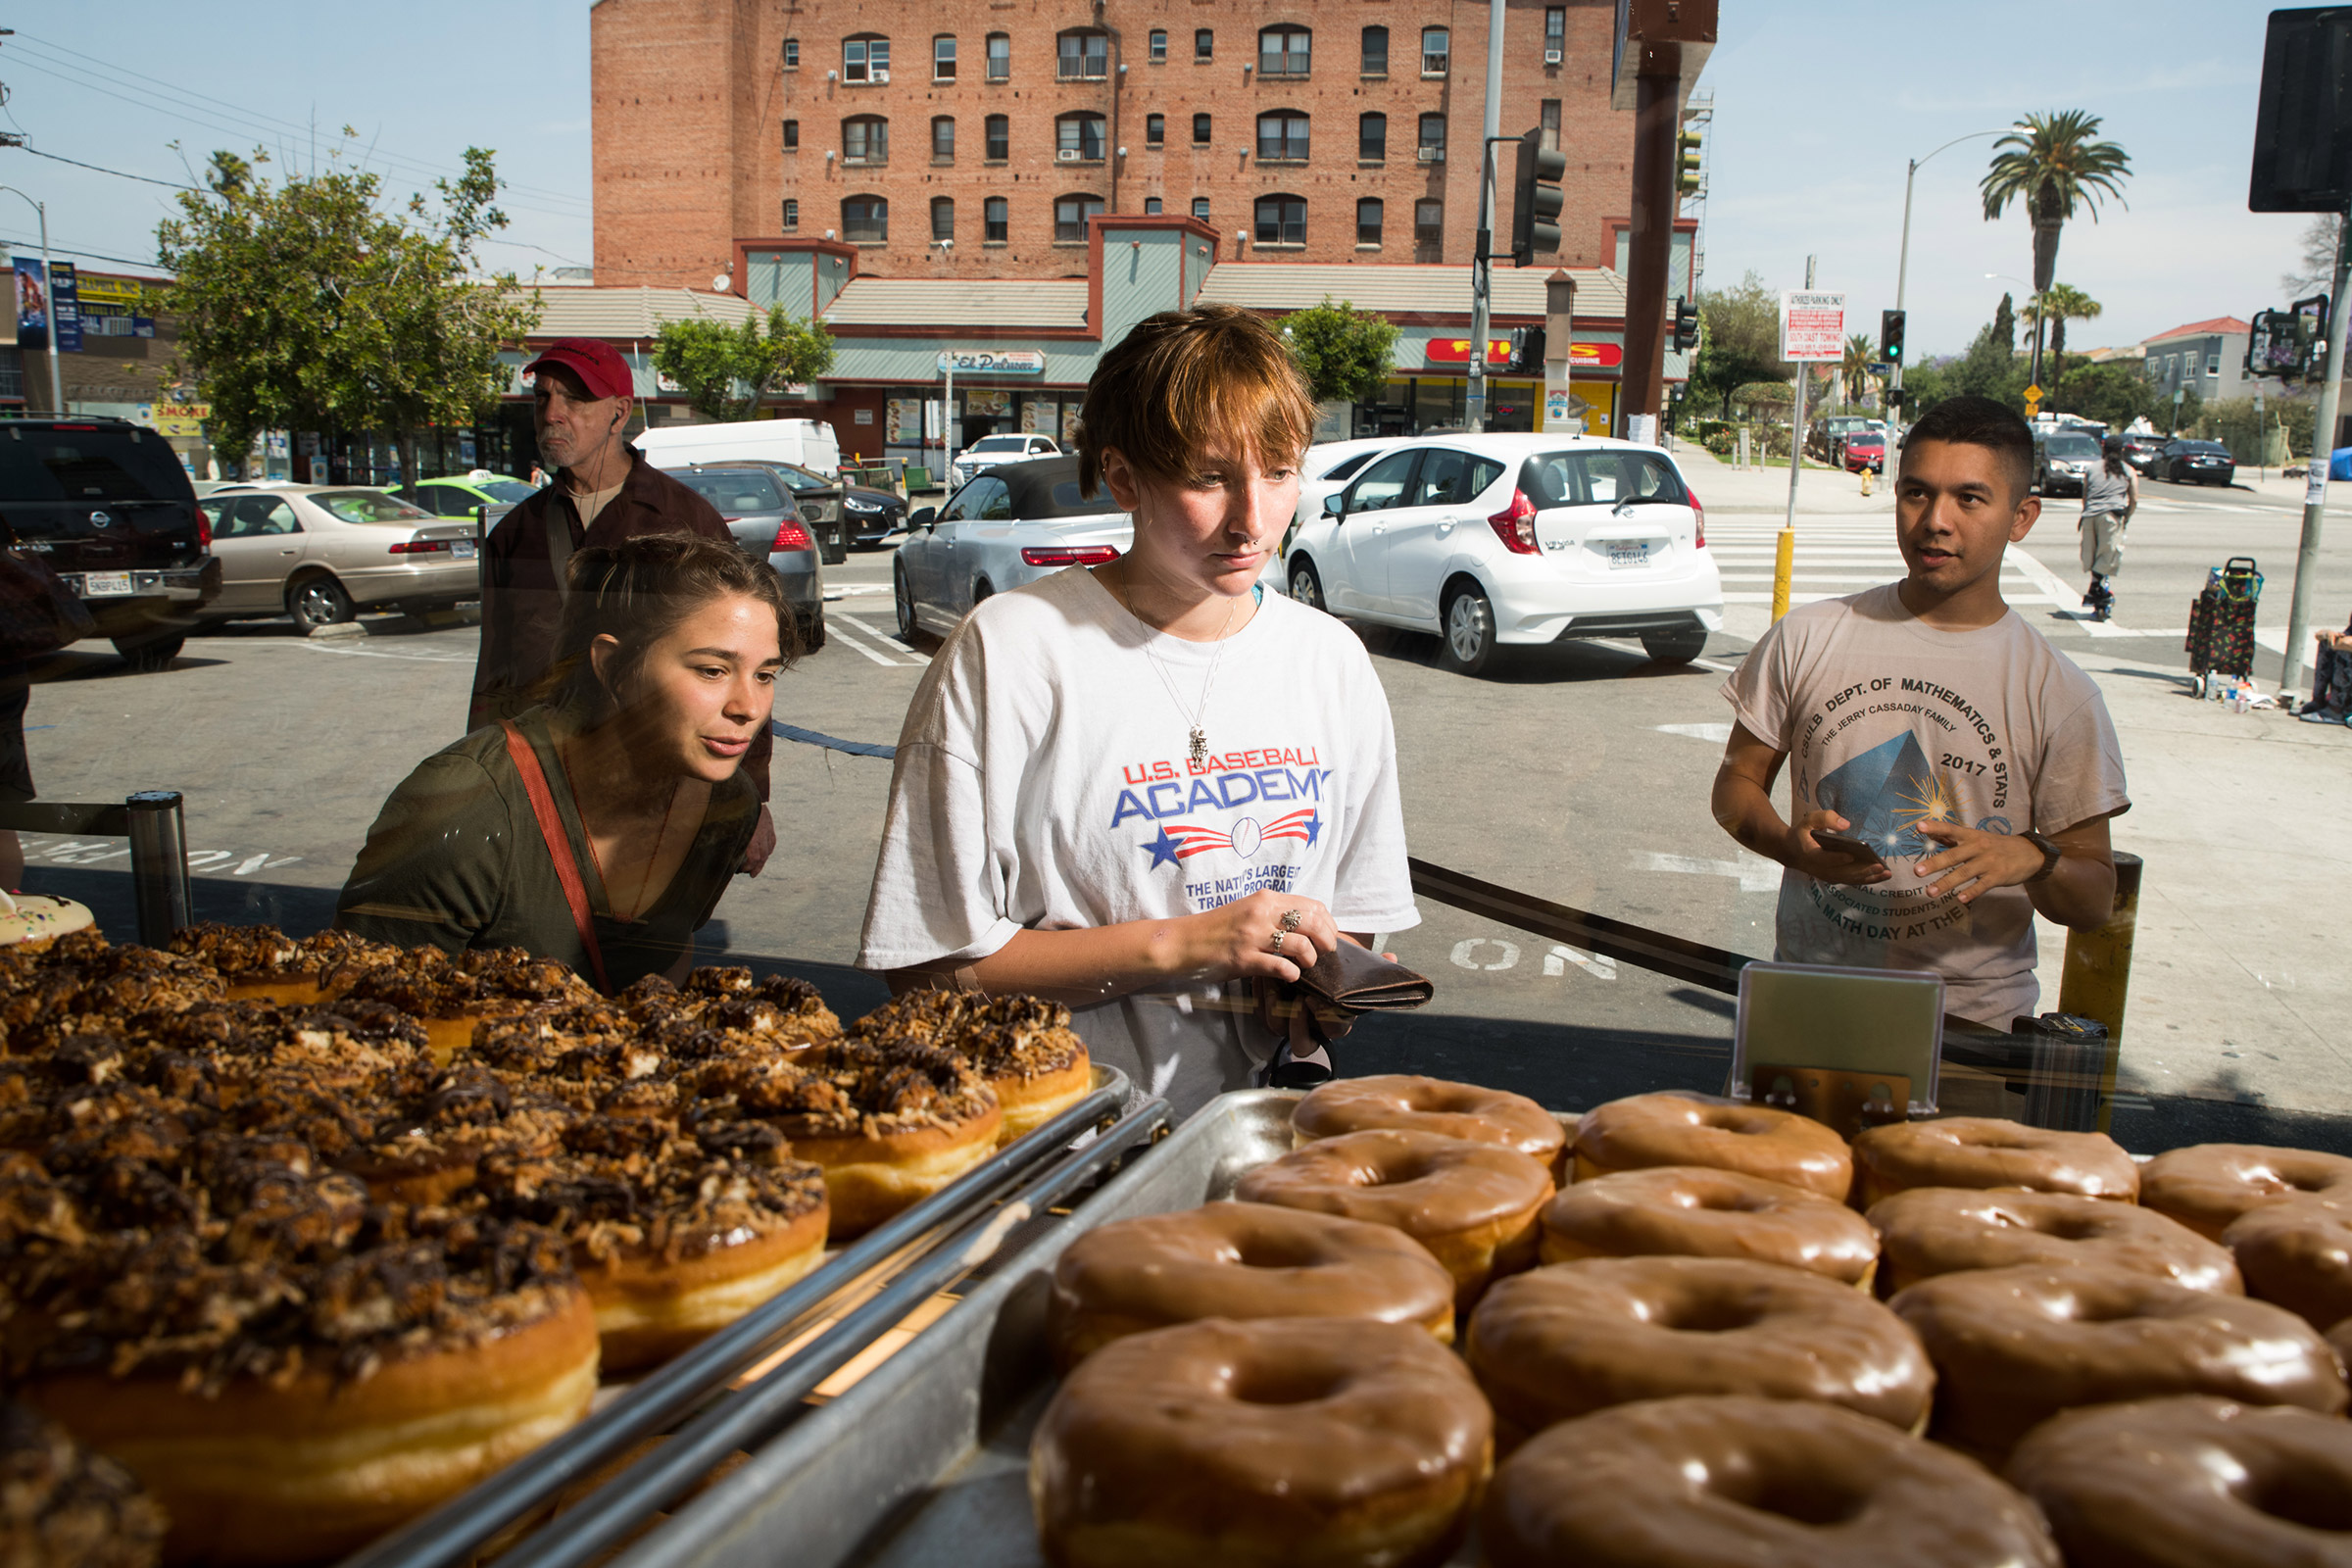 Katy McAfee, left, Abigail Logan, center, and Matthew Ortega pick out doughnuts at California Donuts in Los Angeles on June 6, 2019.